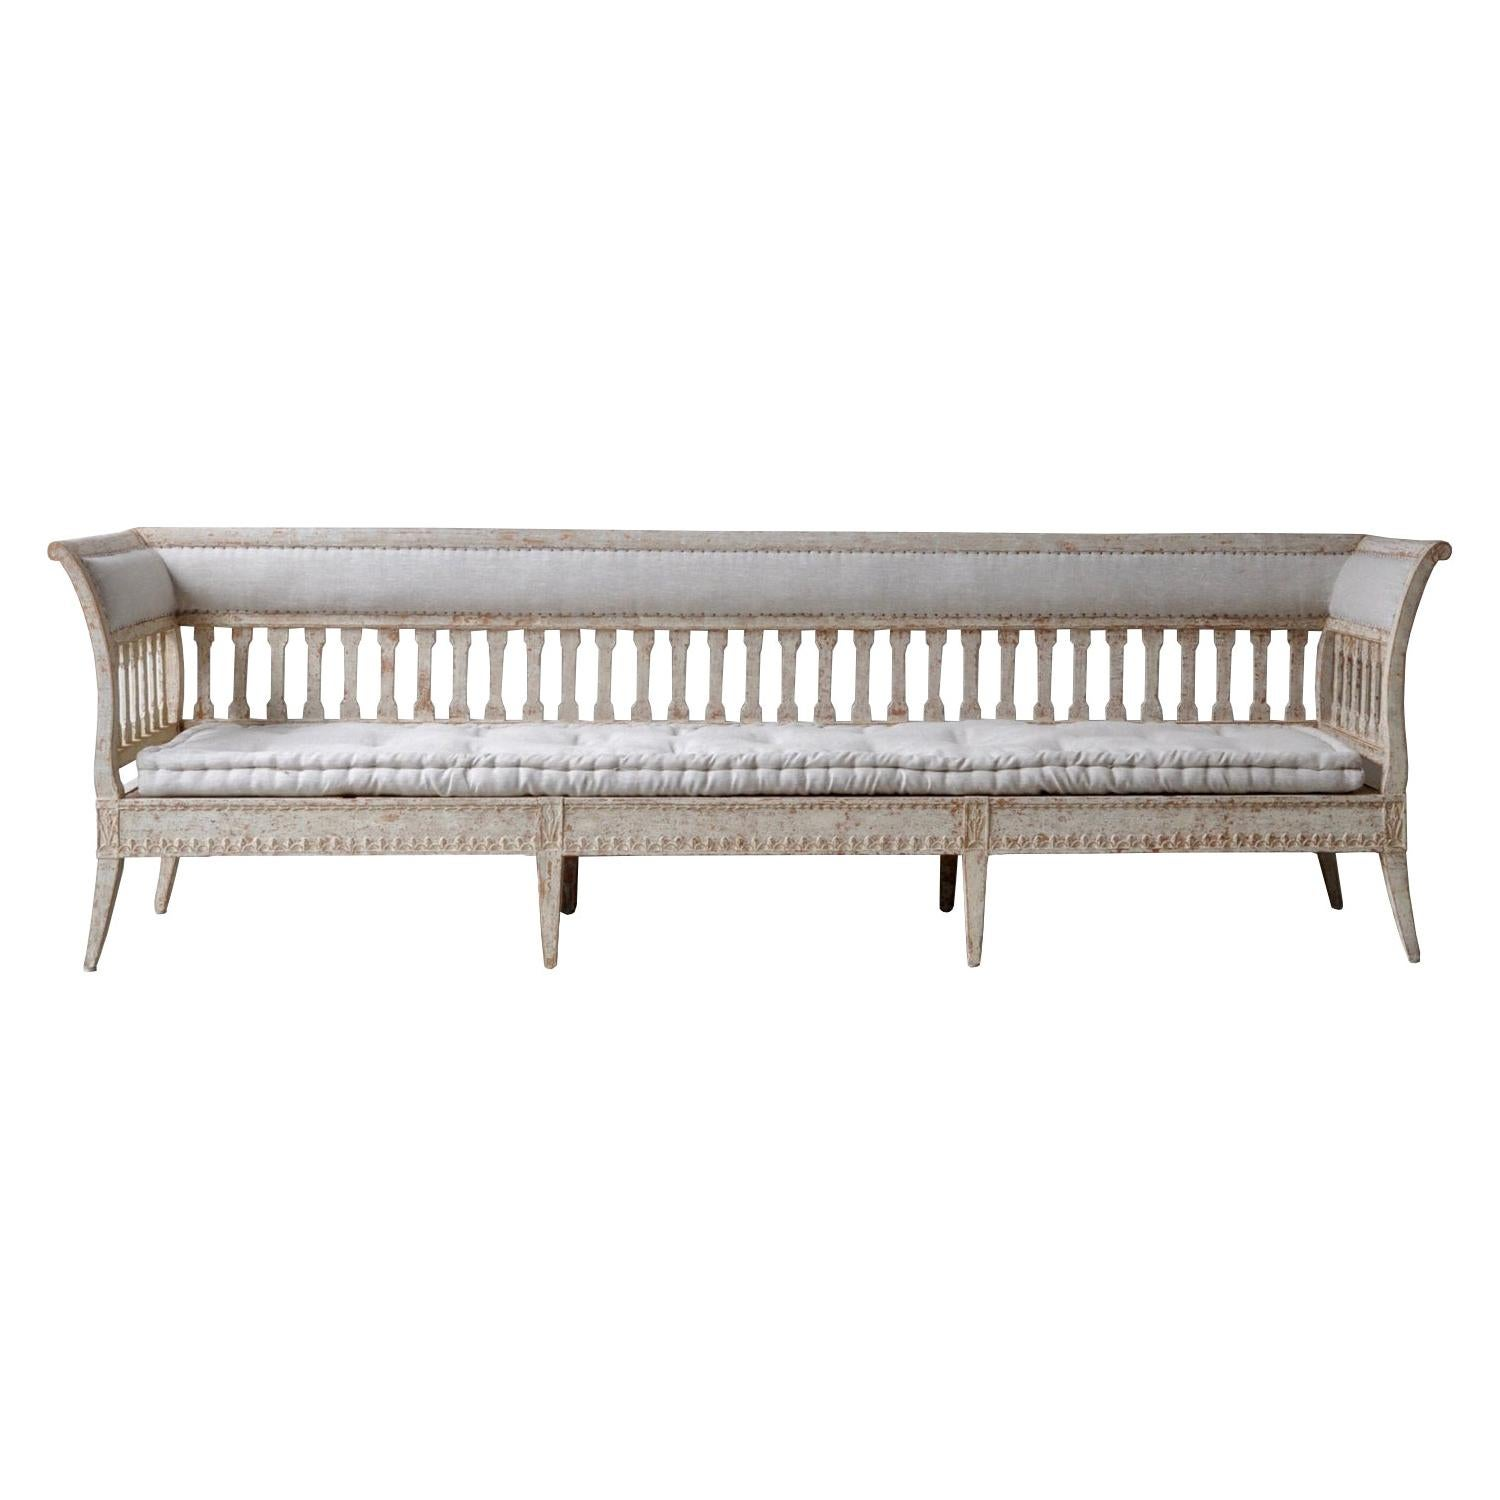 Exception Period Gustavian Long Sofa in Original Paint